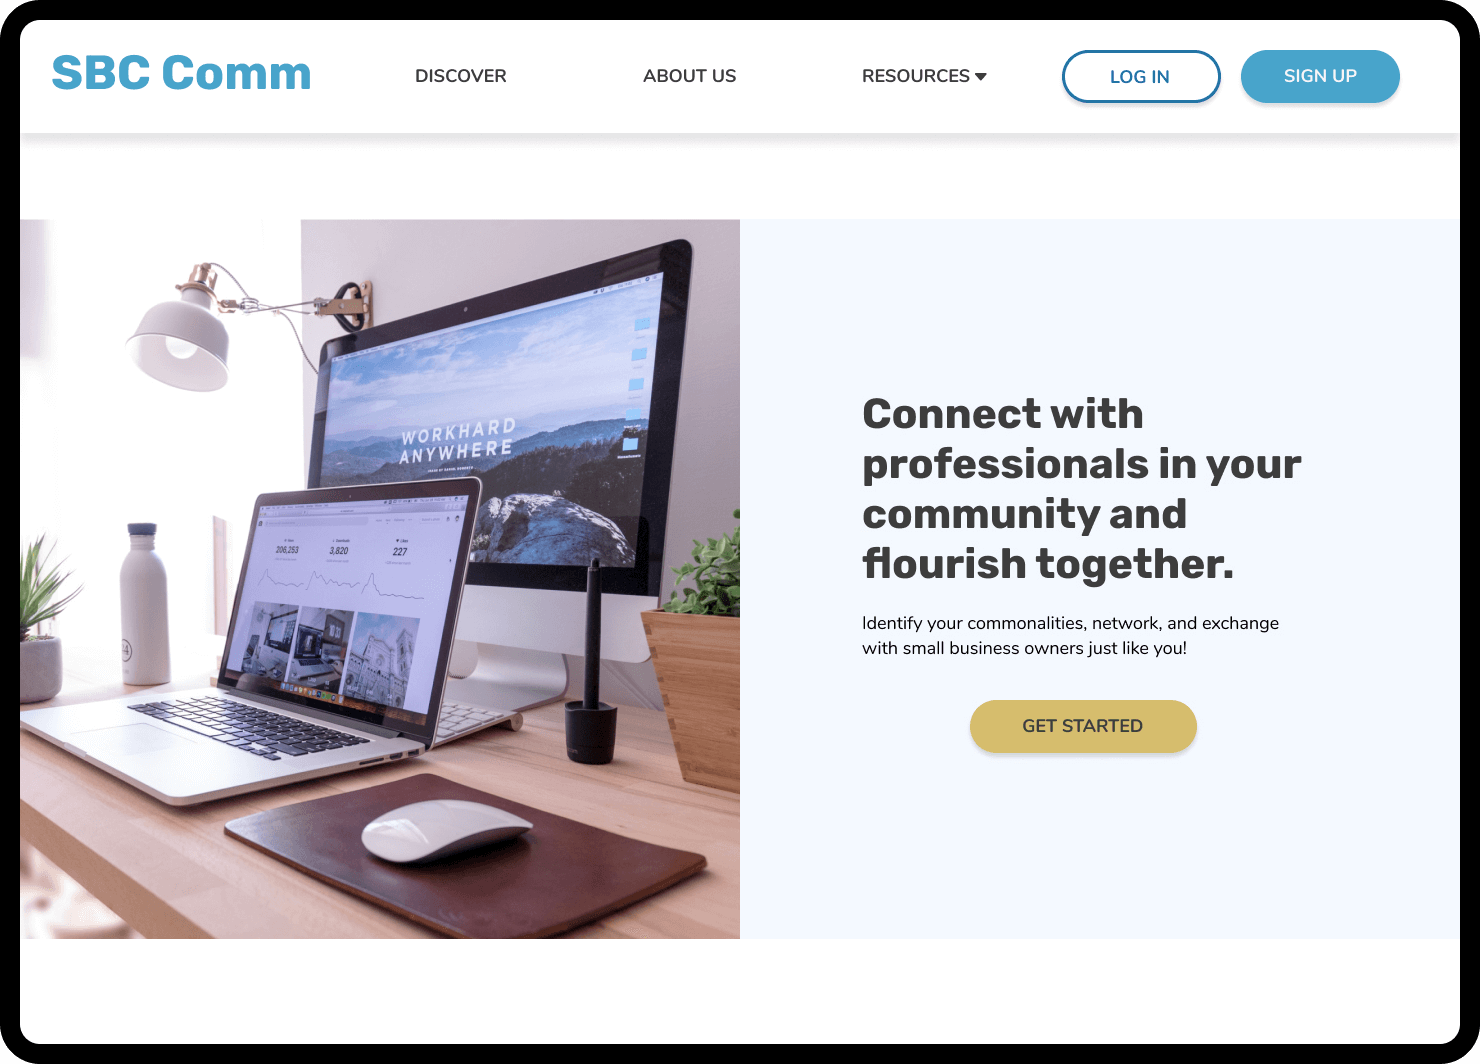 Introductory landing page for SBC Comm: Connect with professionals in your community and flourish together, Identify your commonalities, network, and exchange with small businesses owners just like you. Get Started.